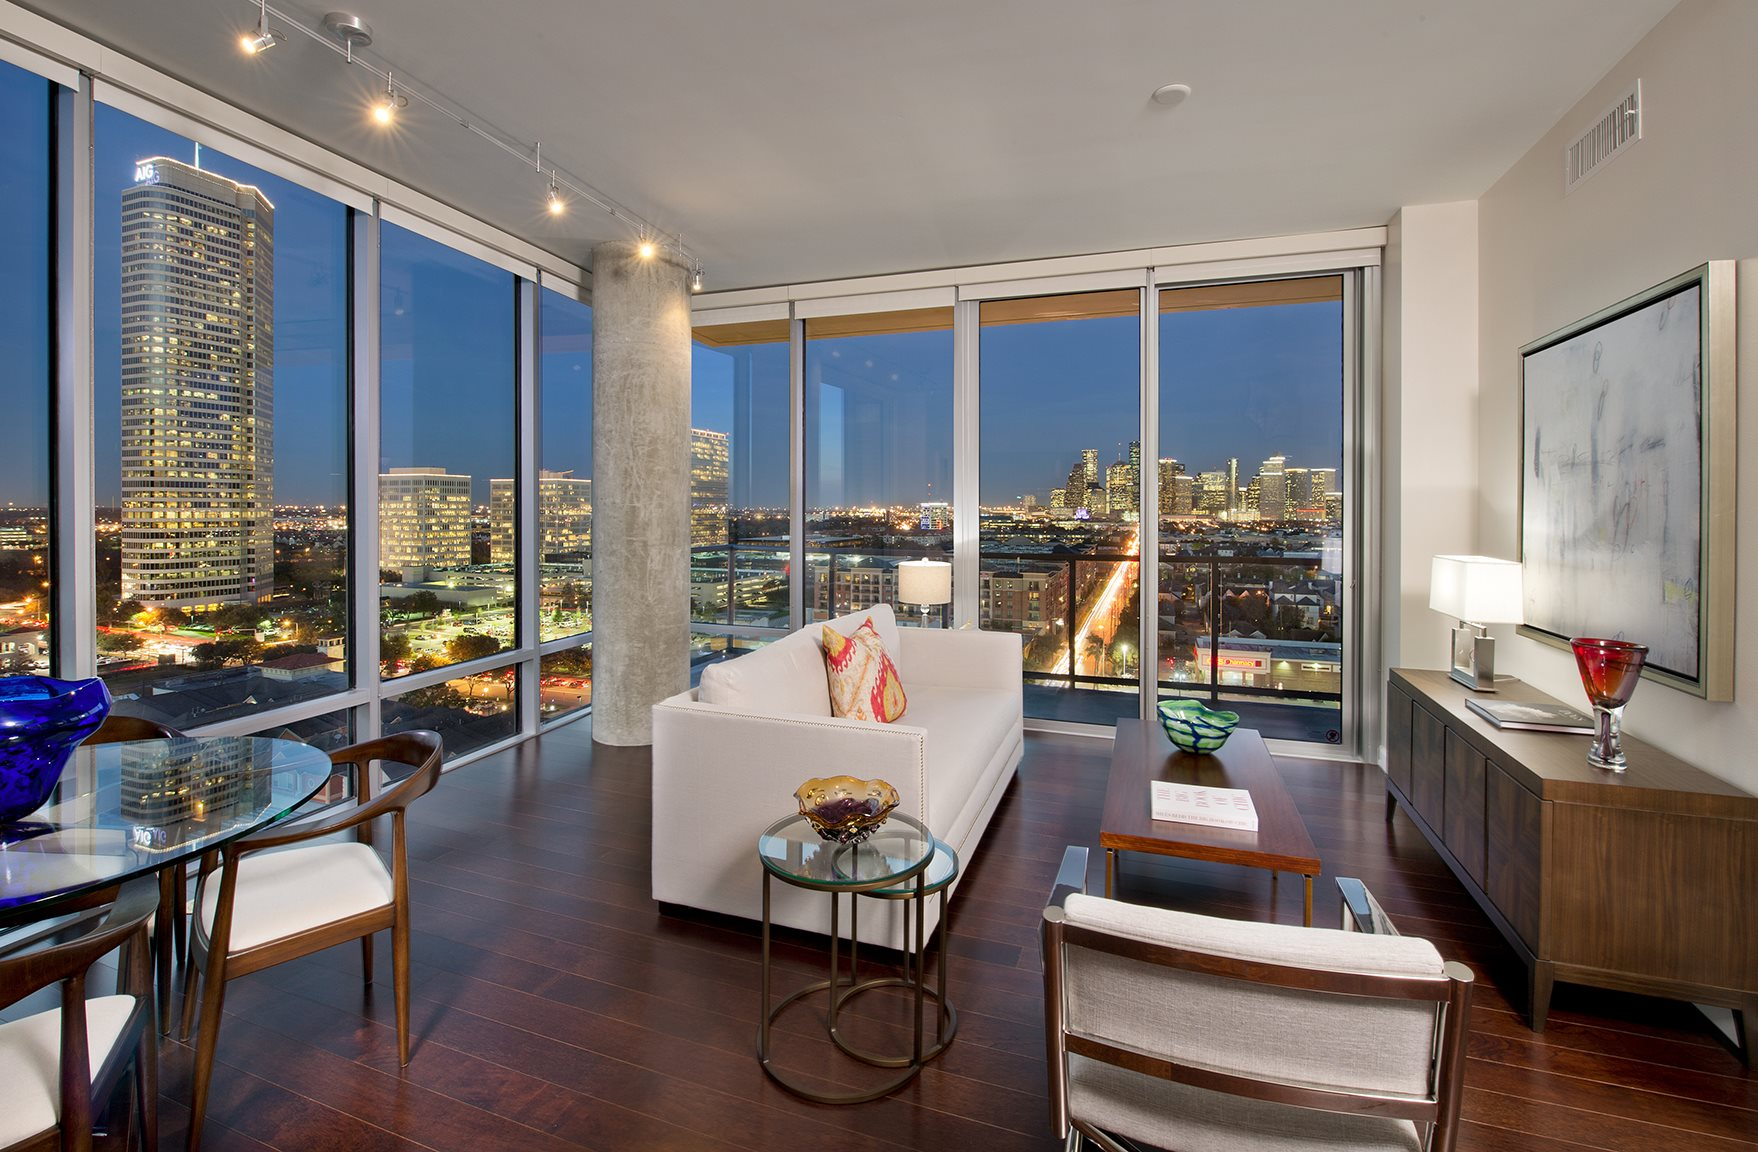 Luxurious Interiors With Modern Lighting at The Sovereign at Regent Square, 3233 West Dallas, Houston, TX